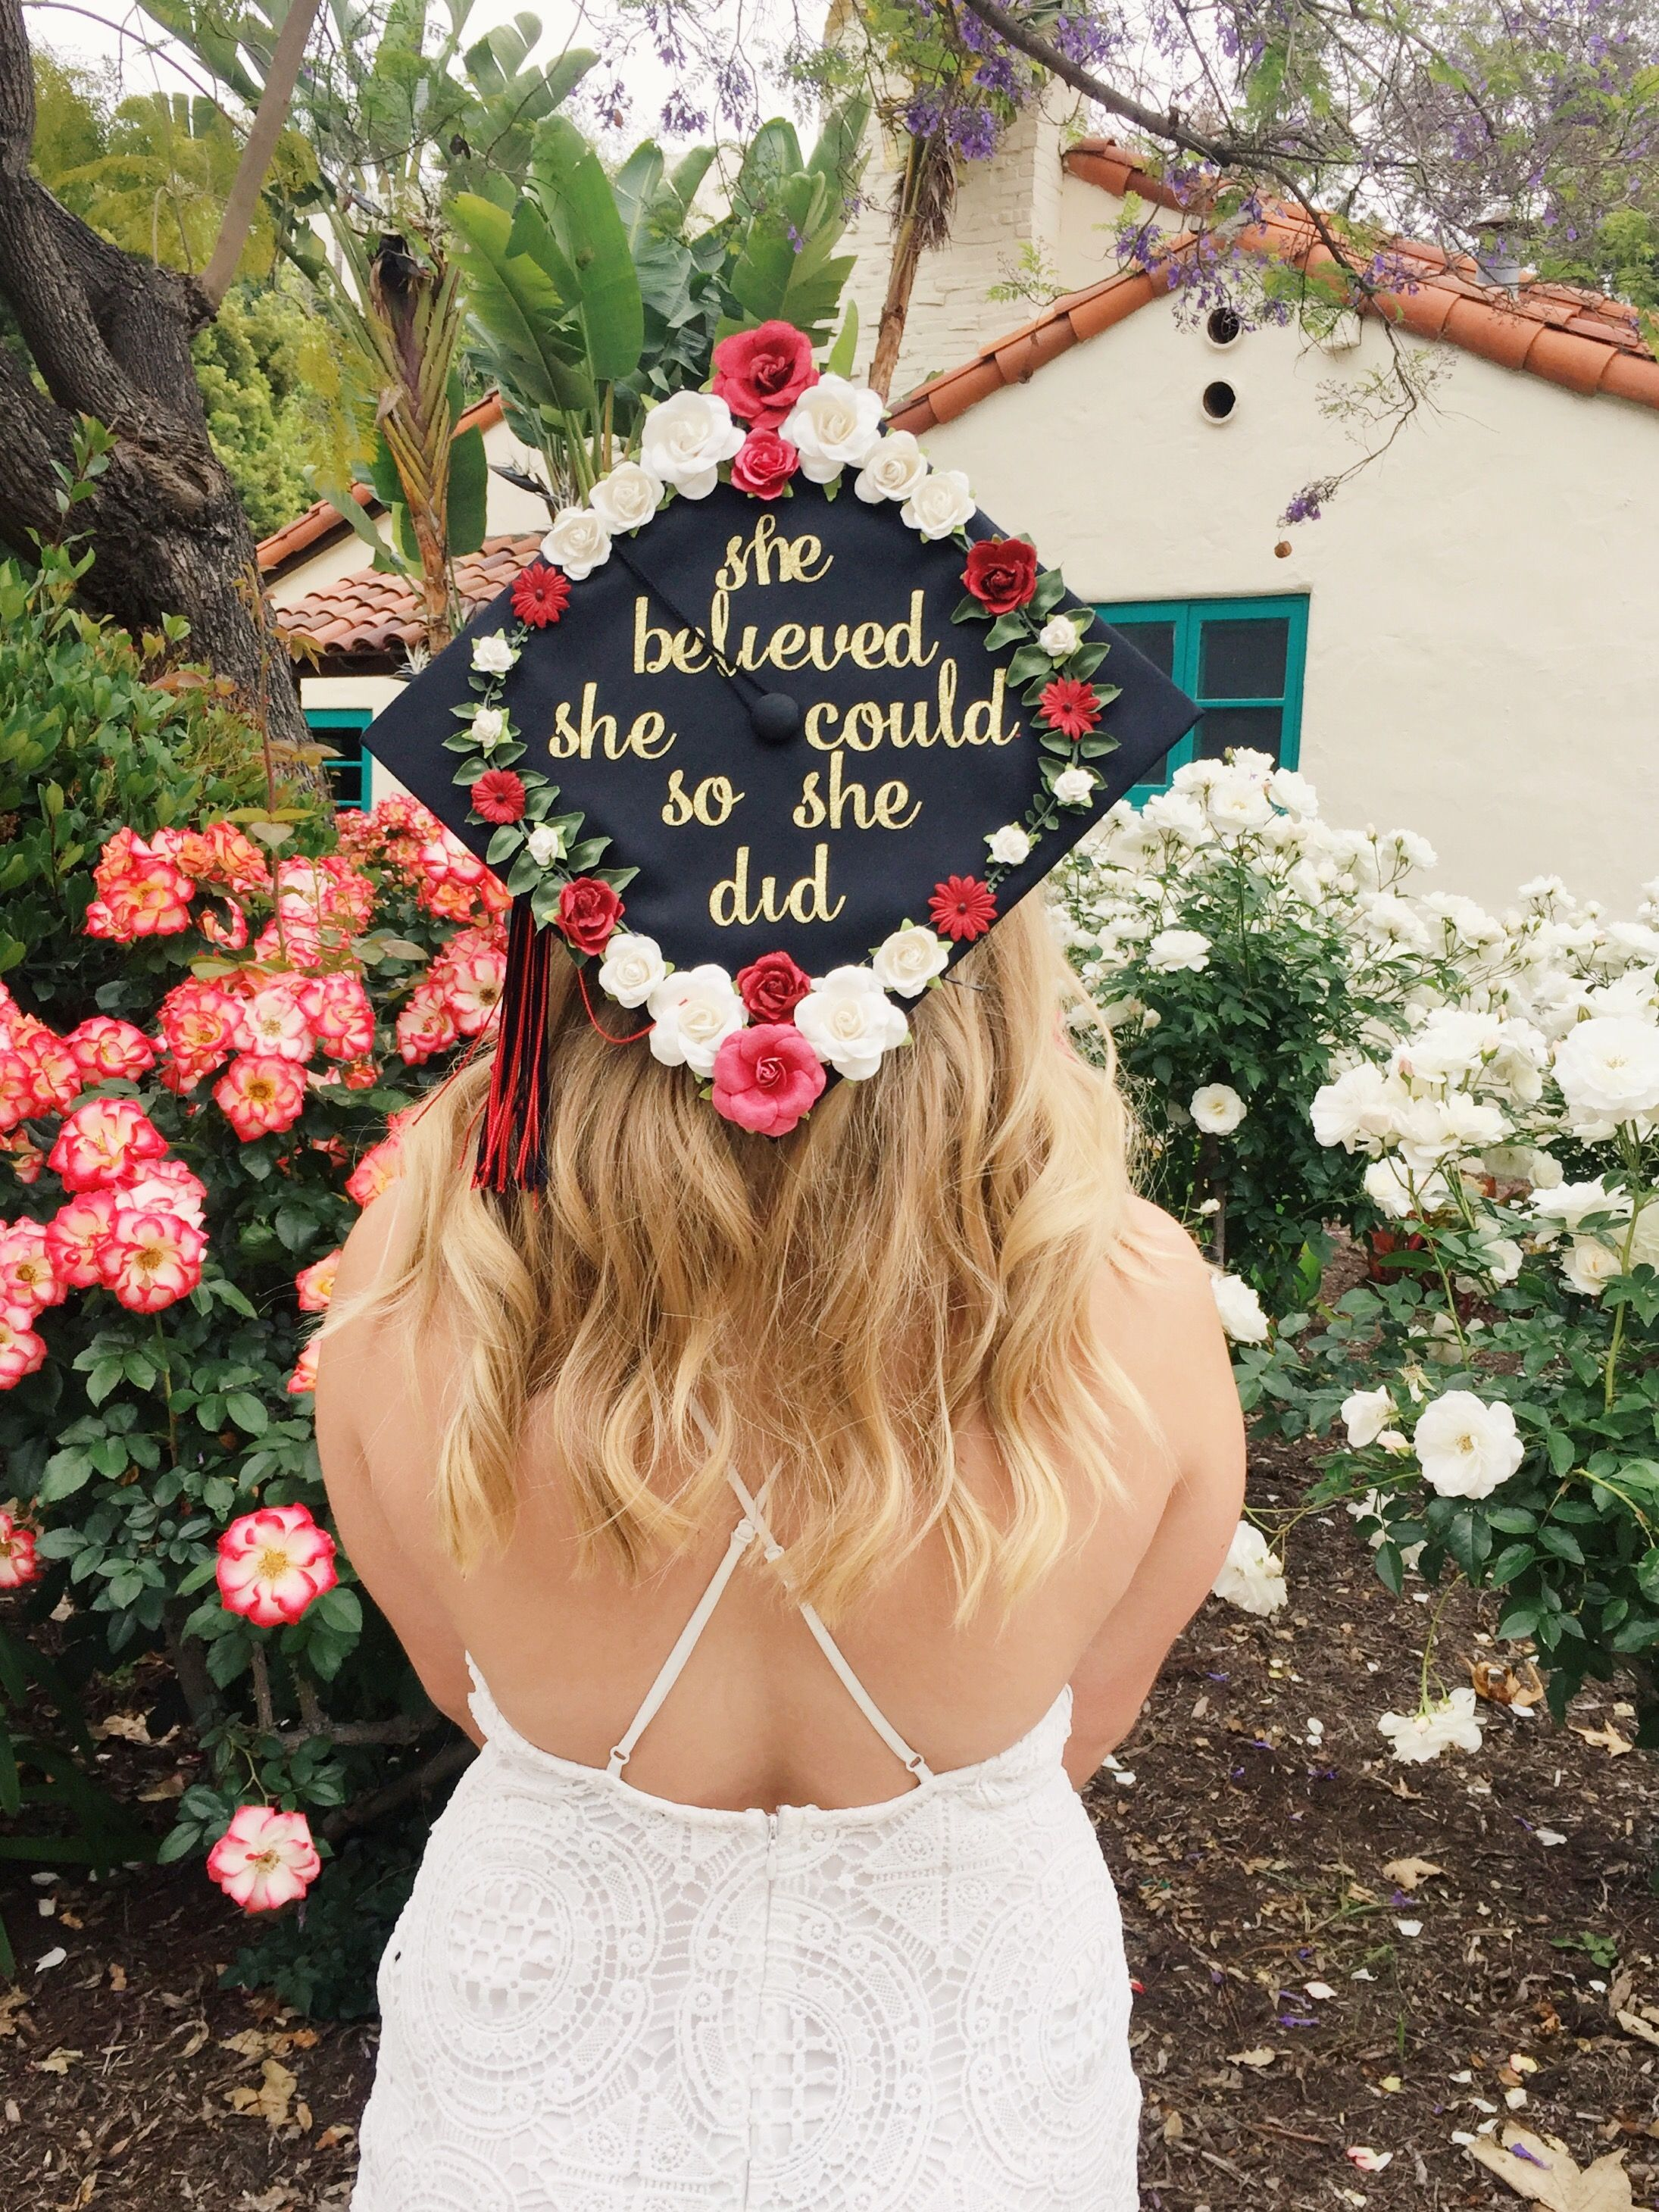 Cute grad cap idea She believed she could so she did